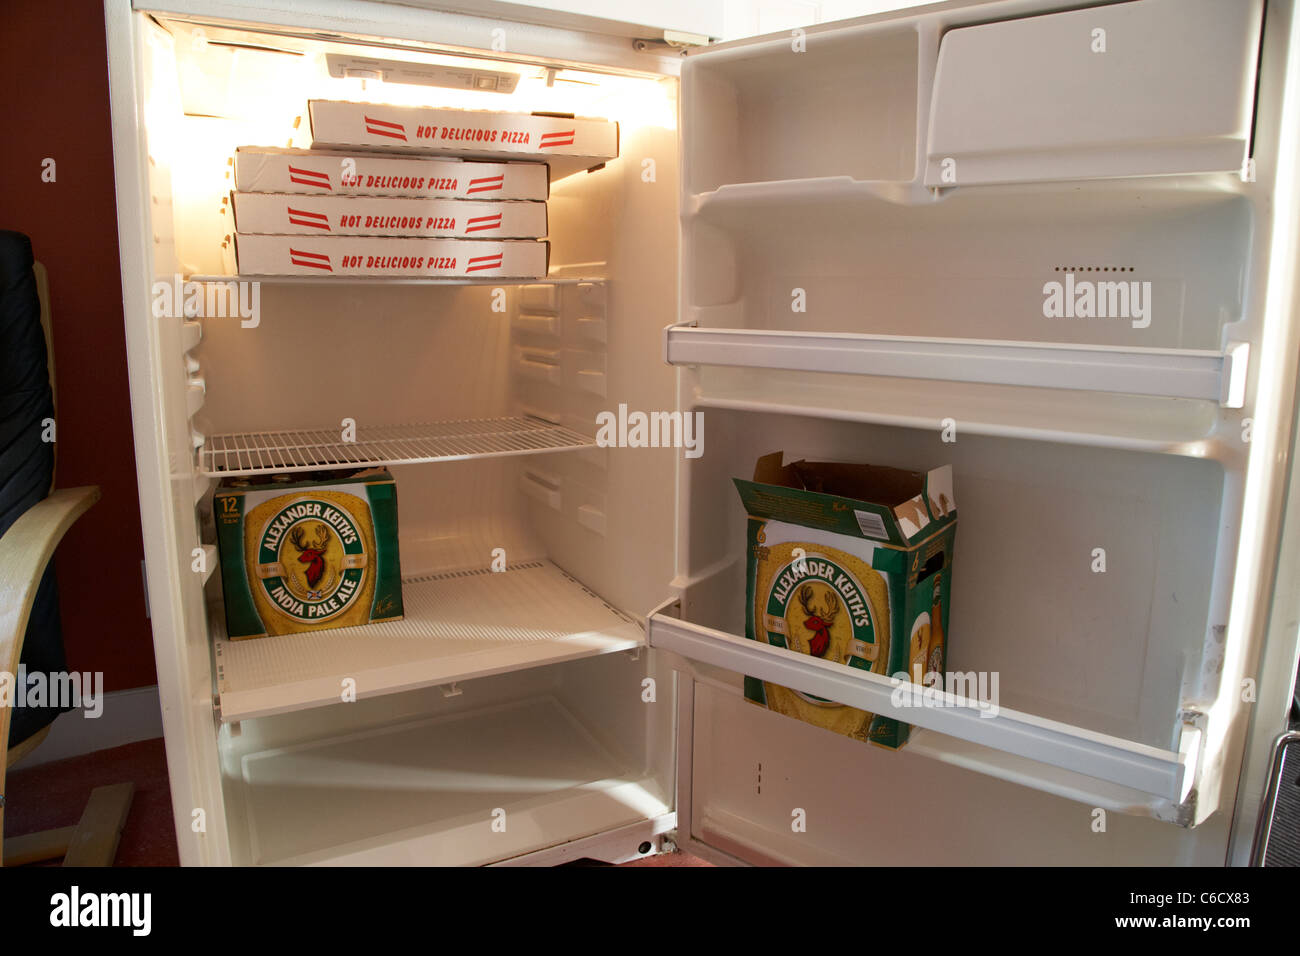 beer and pizza in a fridge winnipeg manitoba canada - Stock Image